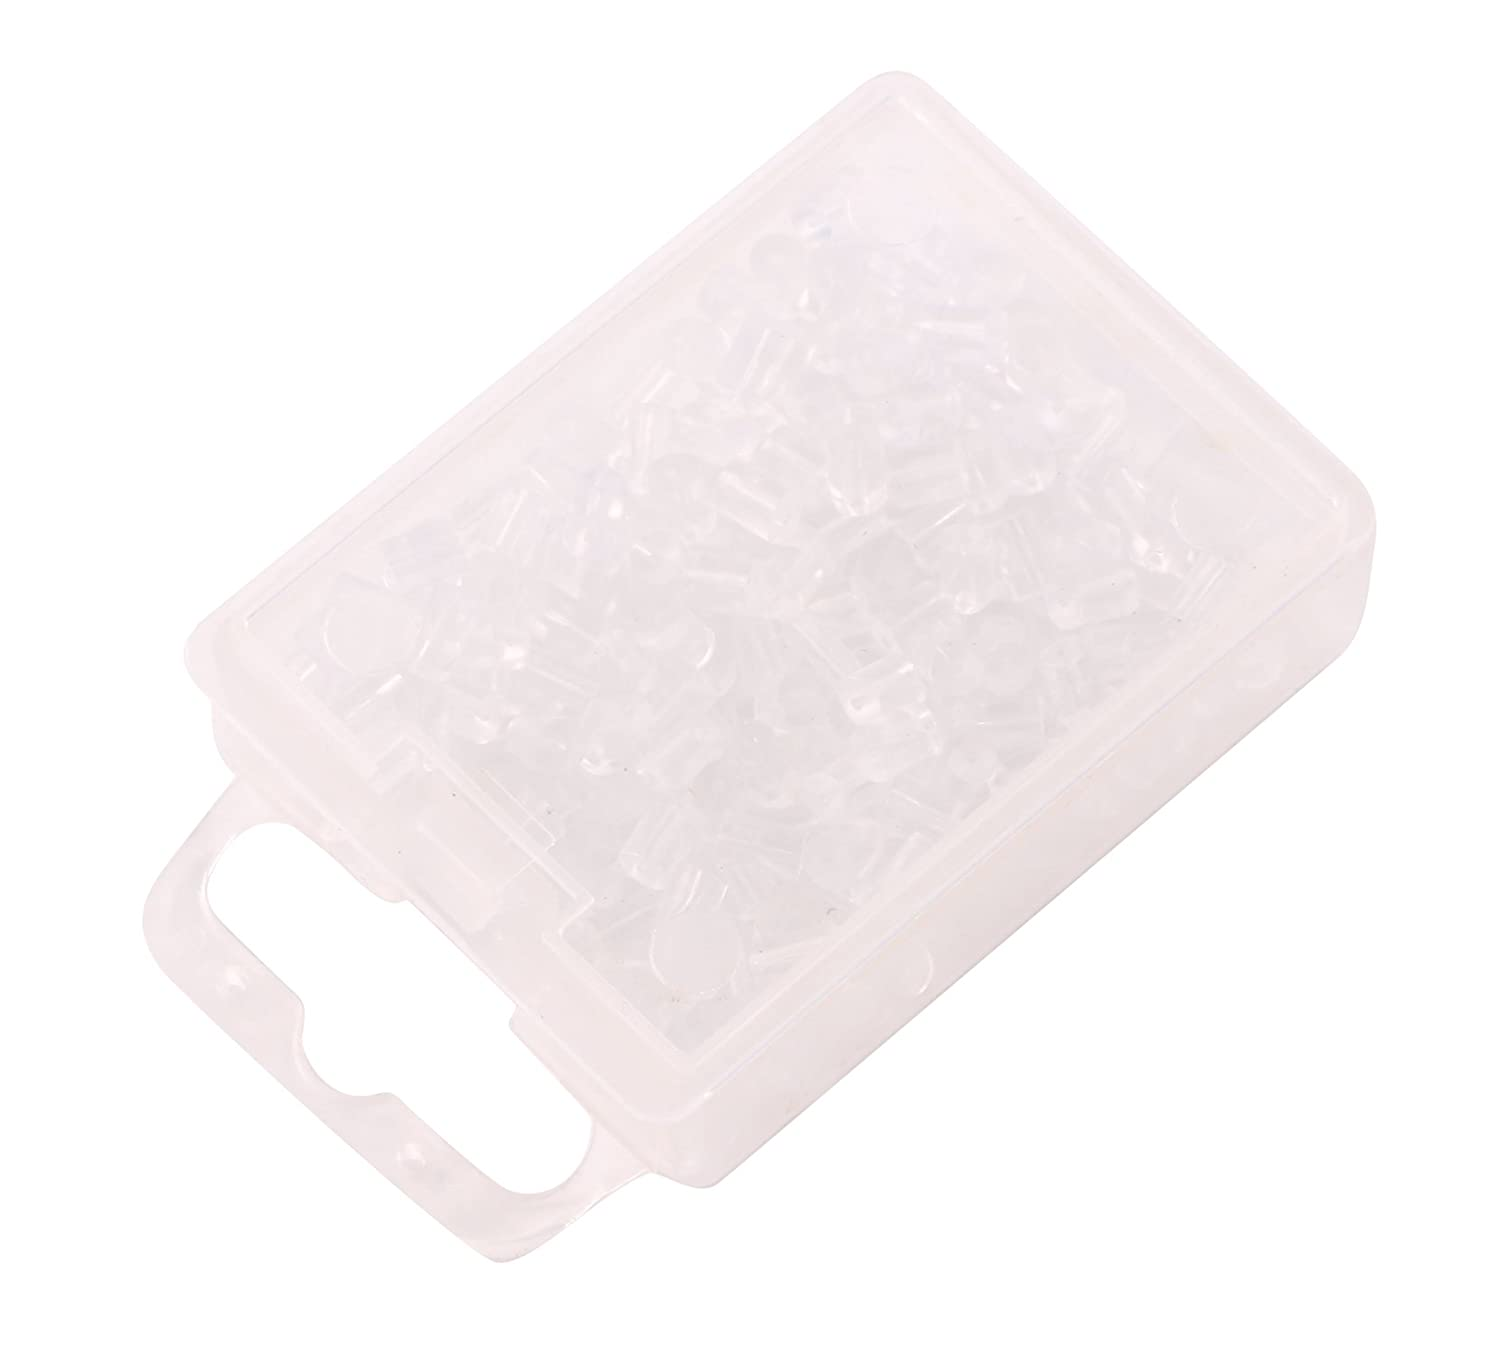 Shapenty 200PCS//100Pairs Clear Color Plastic Rubber Earring Safety Back Stopper Replacement for Fish Hook Earring Tube Shape